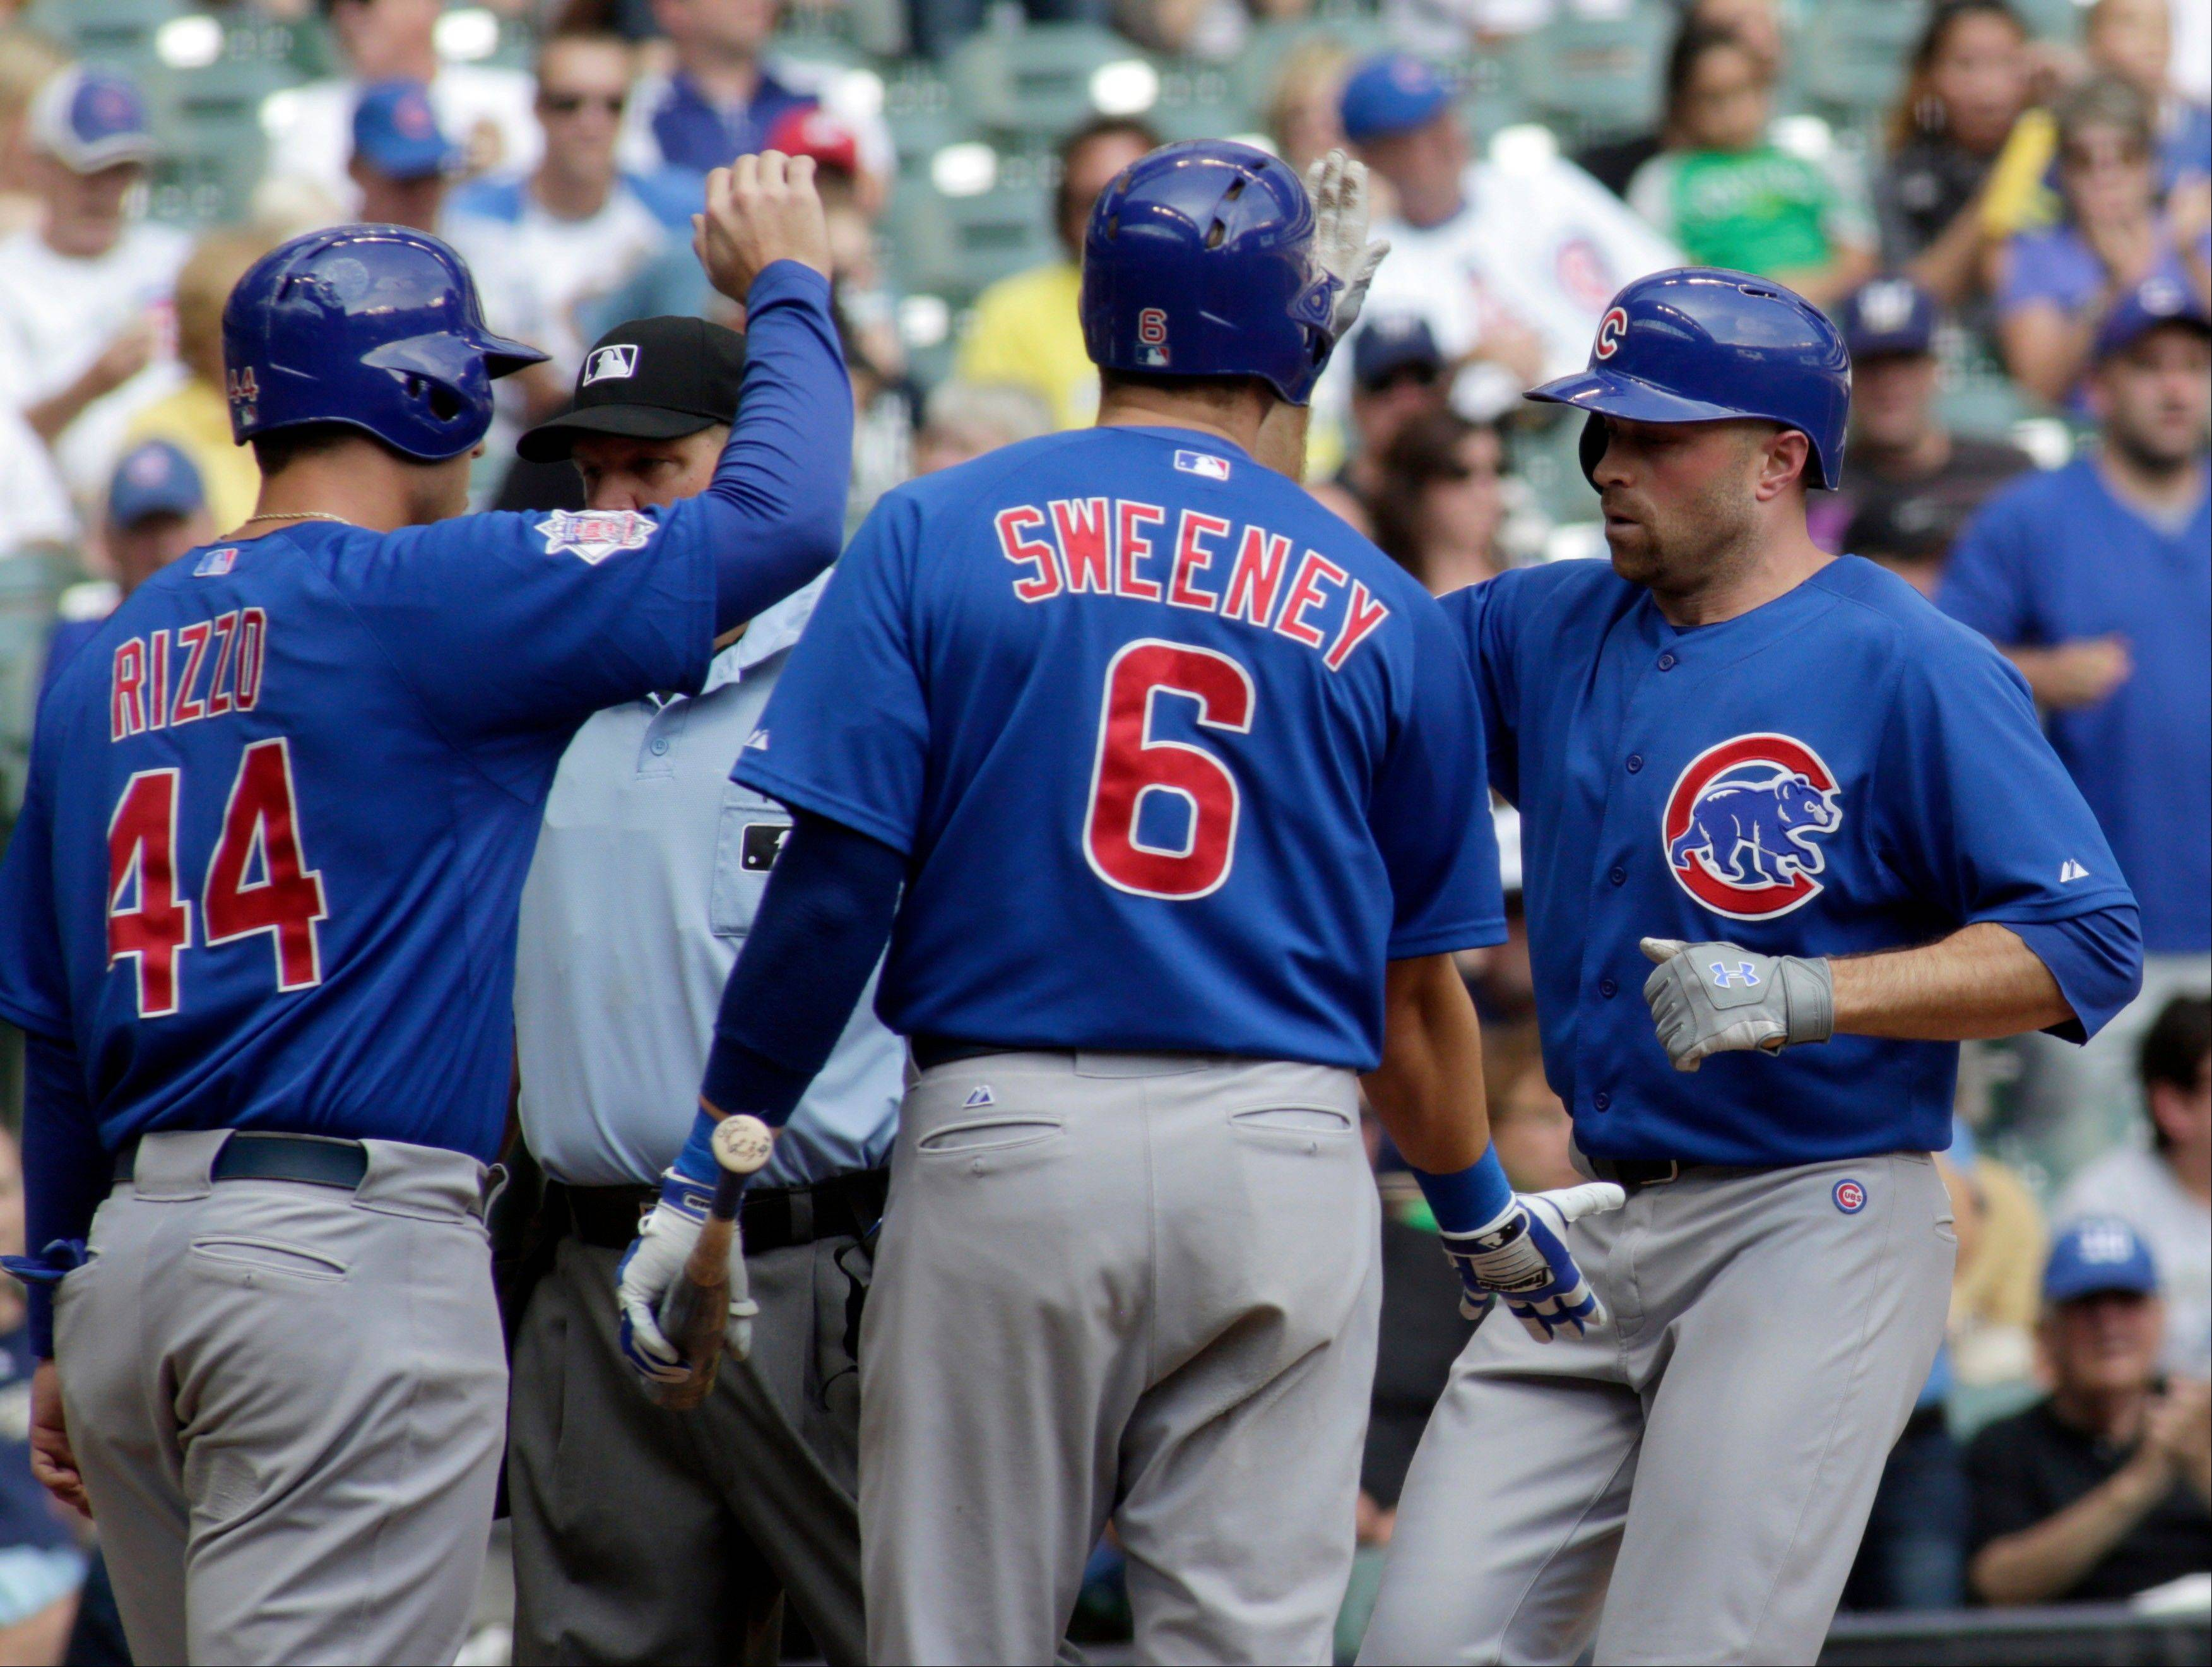 Associated PressThe Cubs' Nate Schierholtz, right, is congratulated by teammates Anthony Rizzo, left, and Ryan Sweeney, center, after hitting a two-run home run against the Milwaukee Brewers during the third inning e Thursday in Milwaukee.